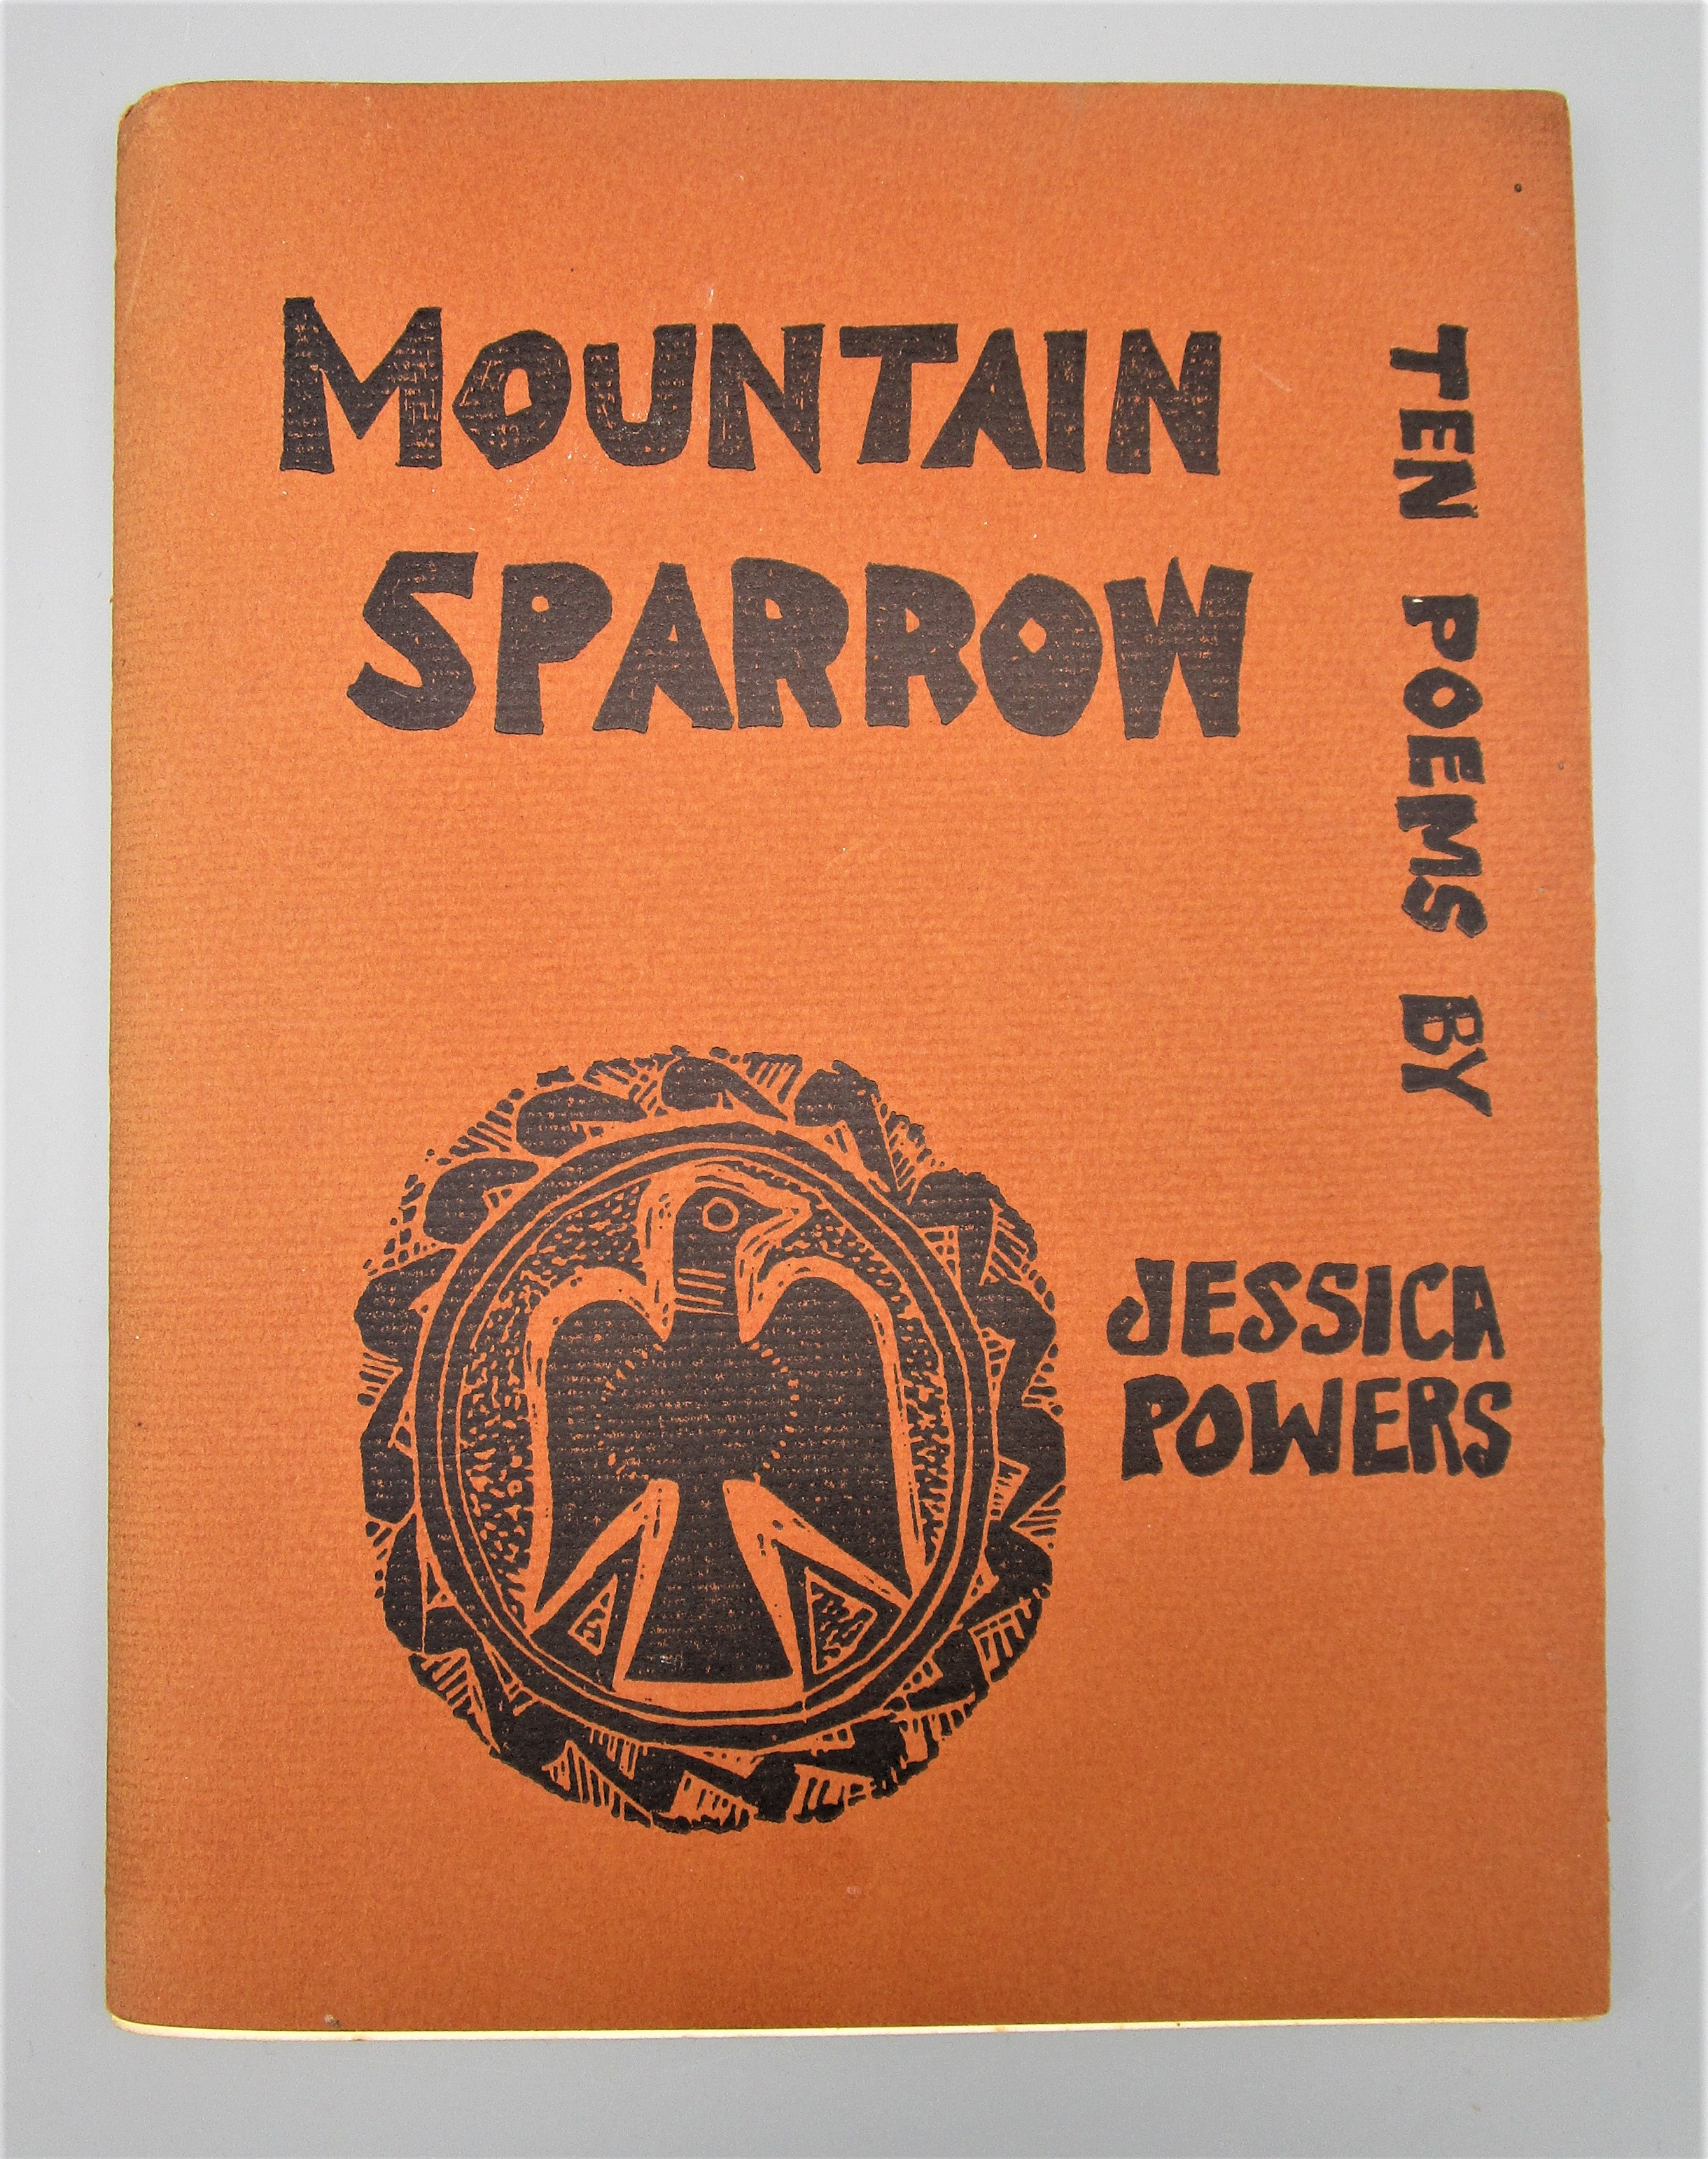 MOUNTAIN SPARROW: TEN POEMS BY JESSICA POWERS, by Jessica Powers - 1960